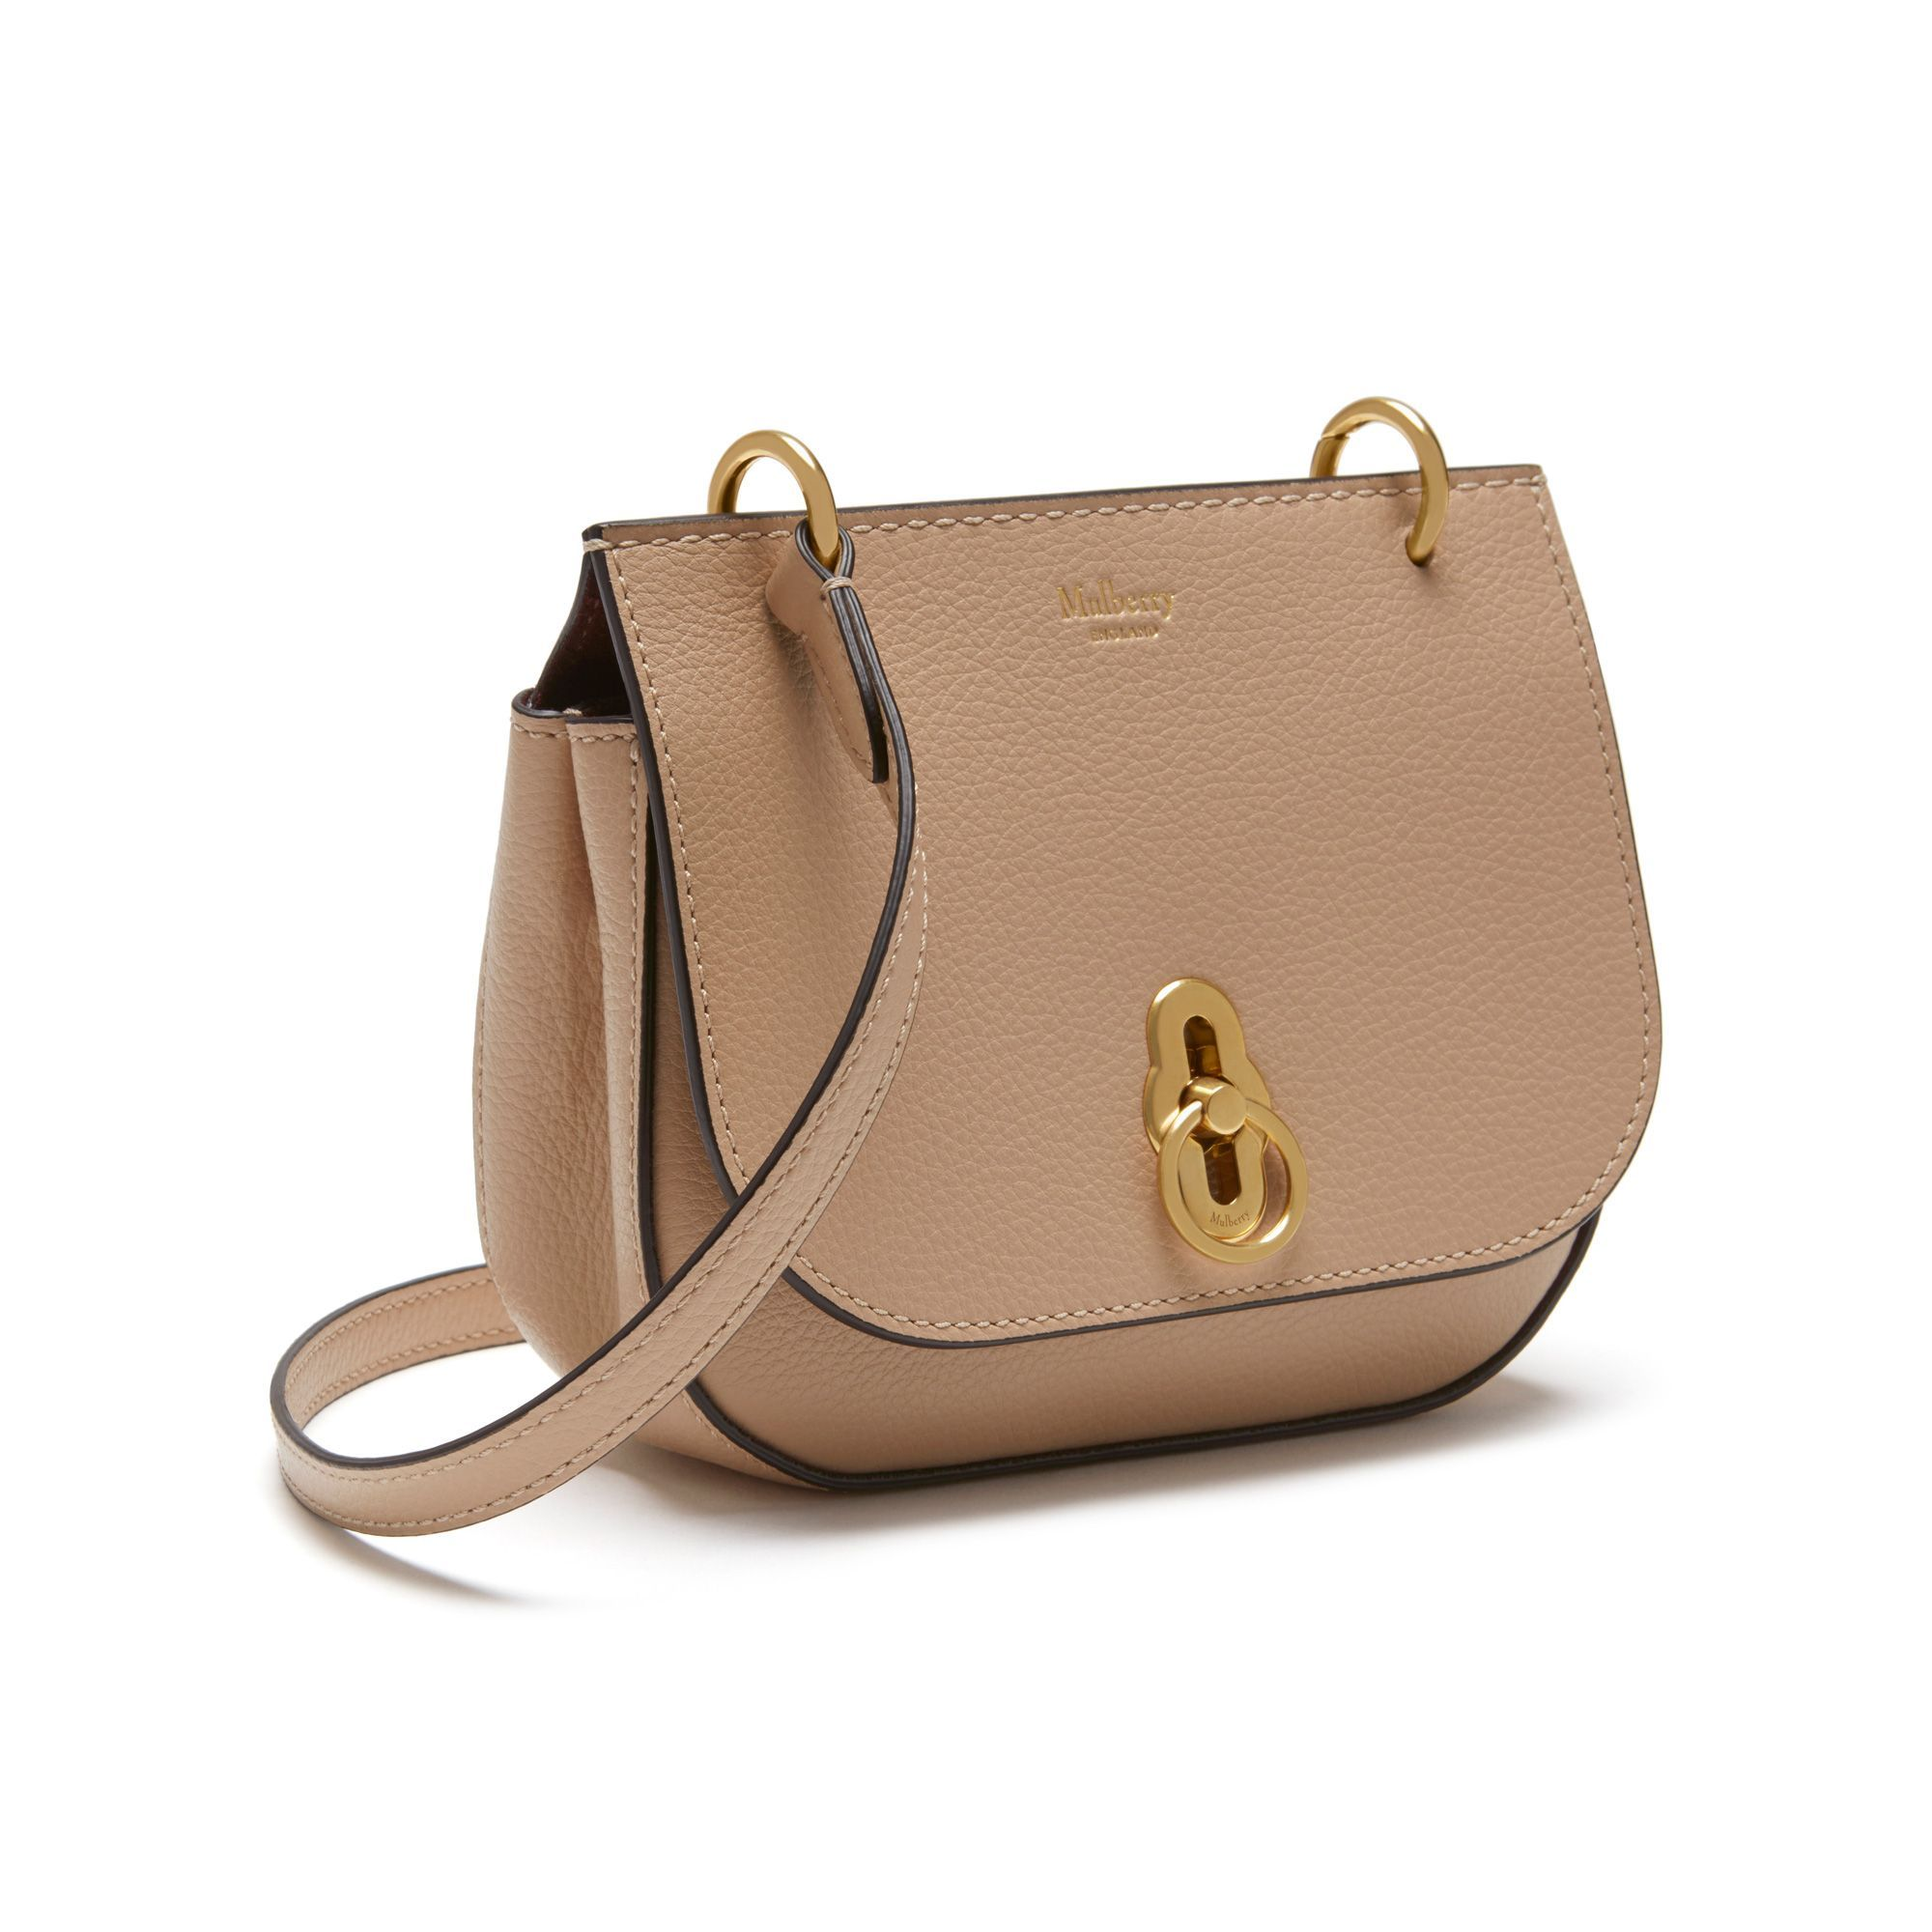 47ee4ba5d160 Shop the Mini Amberley Satchel in Rosewater Small Classic Grain Leather at  Mulberry.com. Meet the miniature addition to the Amberley family.